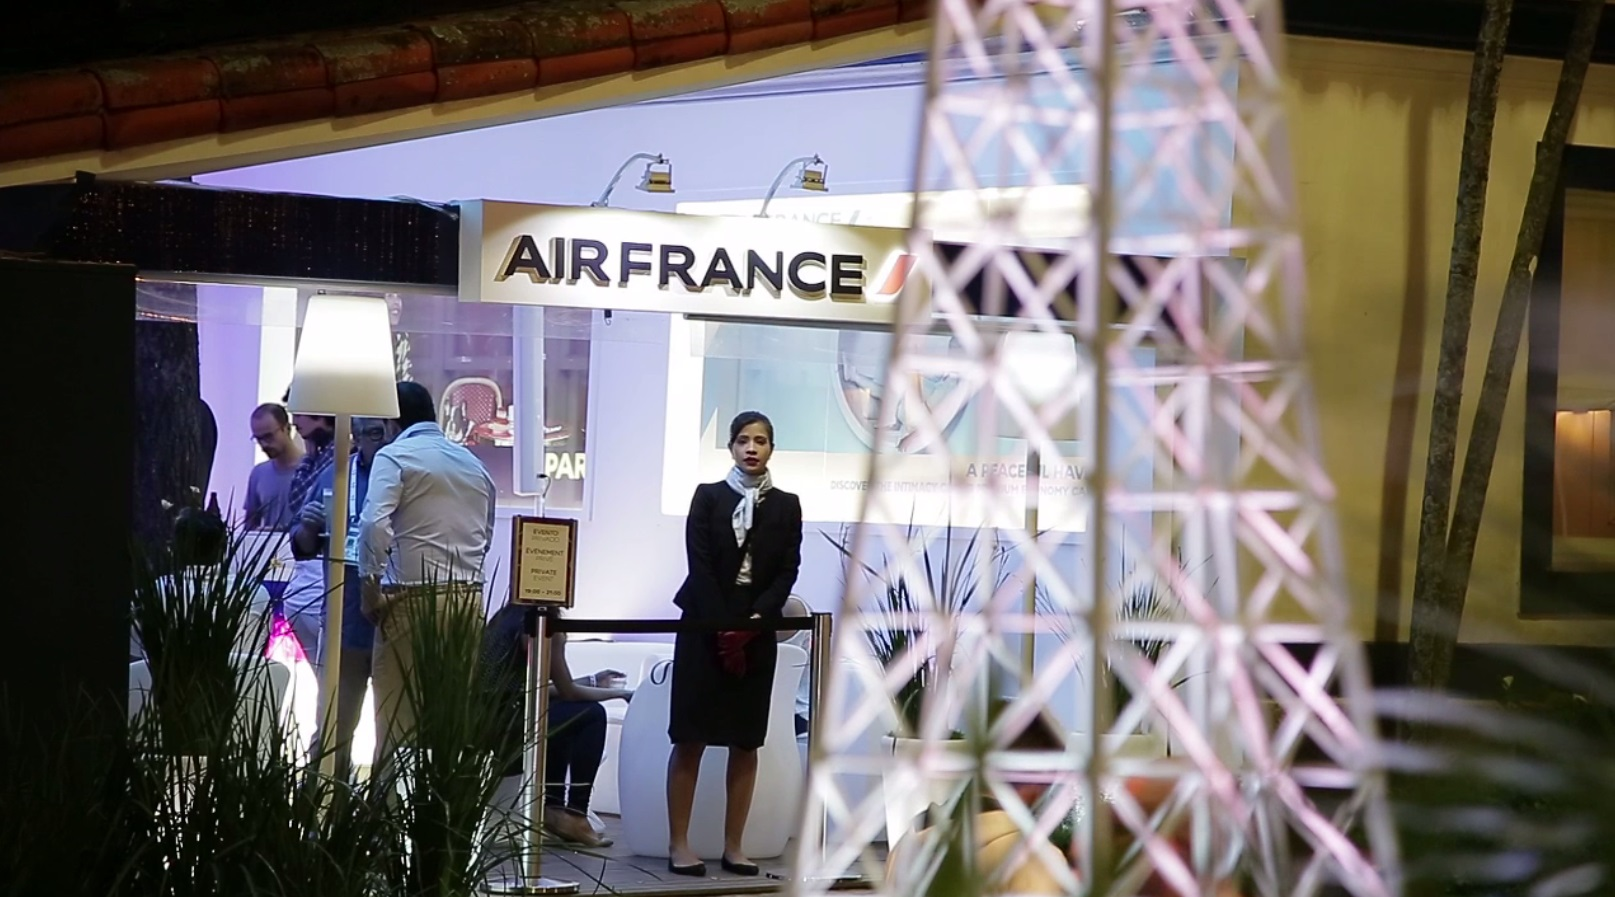 Air France goes to Rio